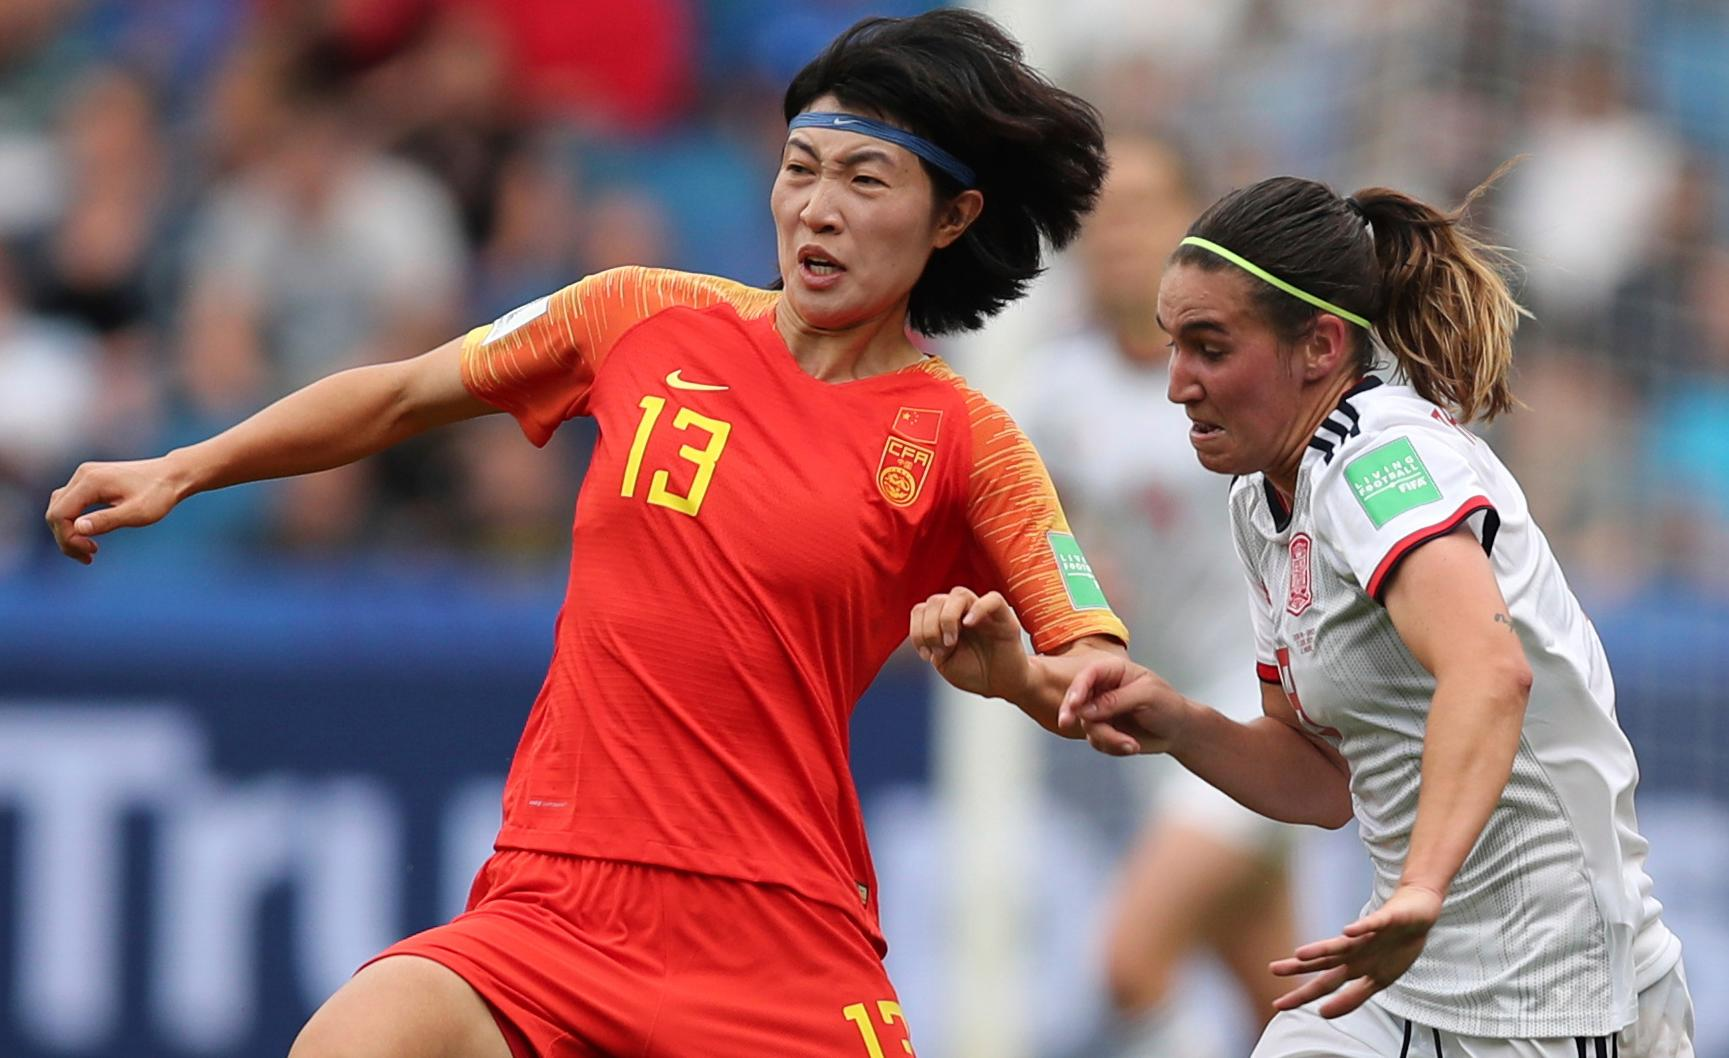 China's Wang Yan, left, vies for the ball against Spain's Mariona Caldentey during the Women's World Cup Group B soccer match between China and Spain at the Stade Oceane in Le Havre, France, Monday, June 17, 2019. (AP Photo/Francisco Seco)